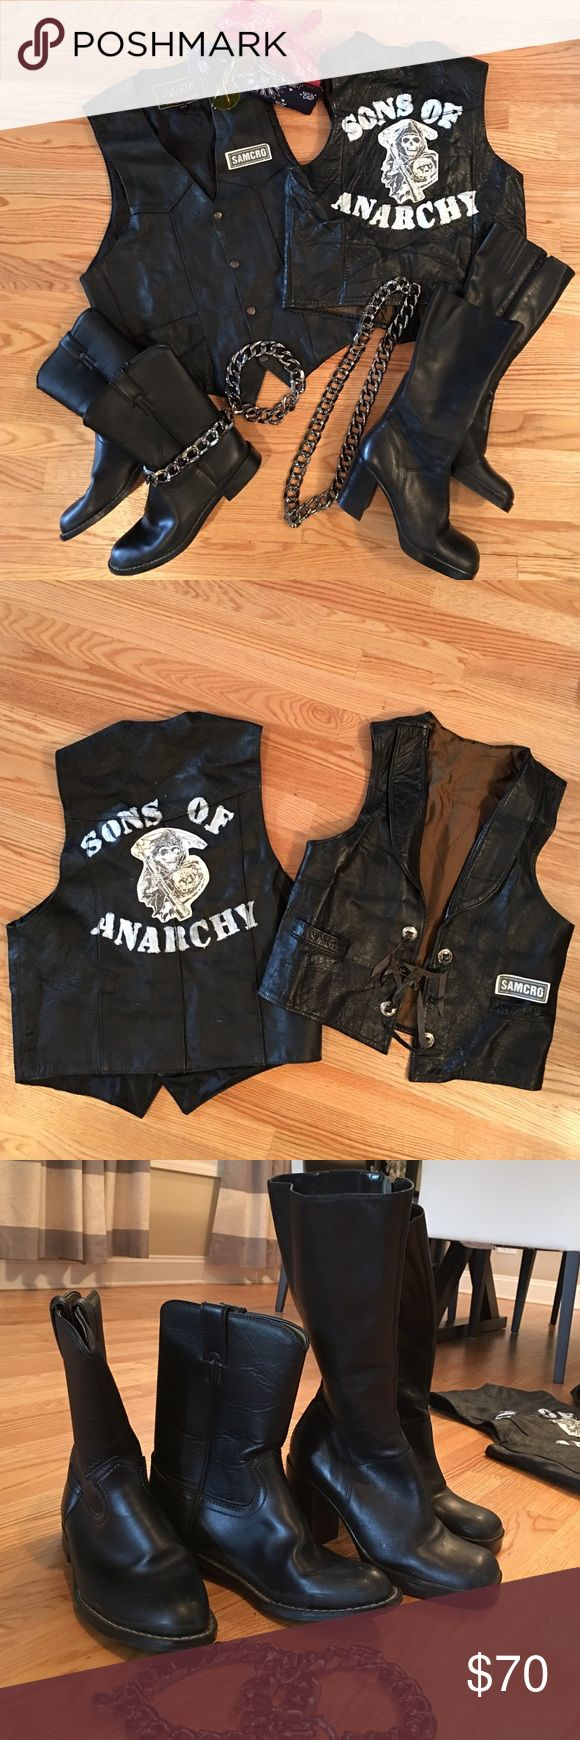 Sons of Anarchy men's and women's biker costume I've received tons of compliments on these homemade Sons of Anarchy his and her costumes using genuine leather vests and boots!  Men's boot is a 9 1/2, women's is a 9.  Faux metal chain around boots is plastic and slides on and off.  The leather is worn from years of love before converting to a costume, but still in mint condition.  Men's vest size 44. Women's medium/large. Other